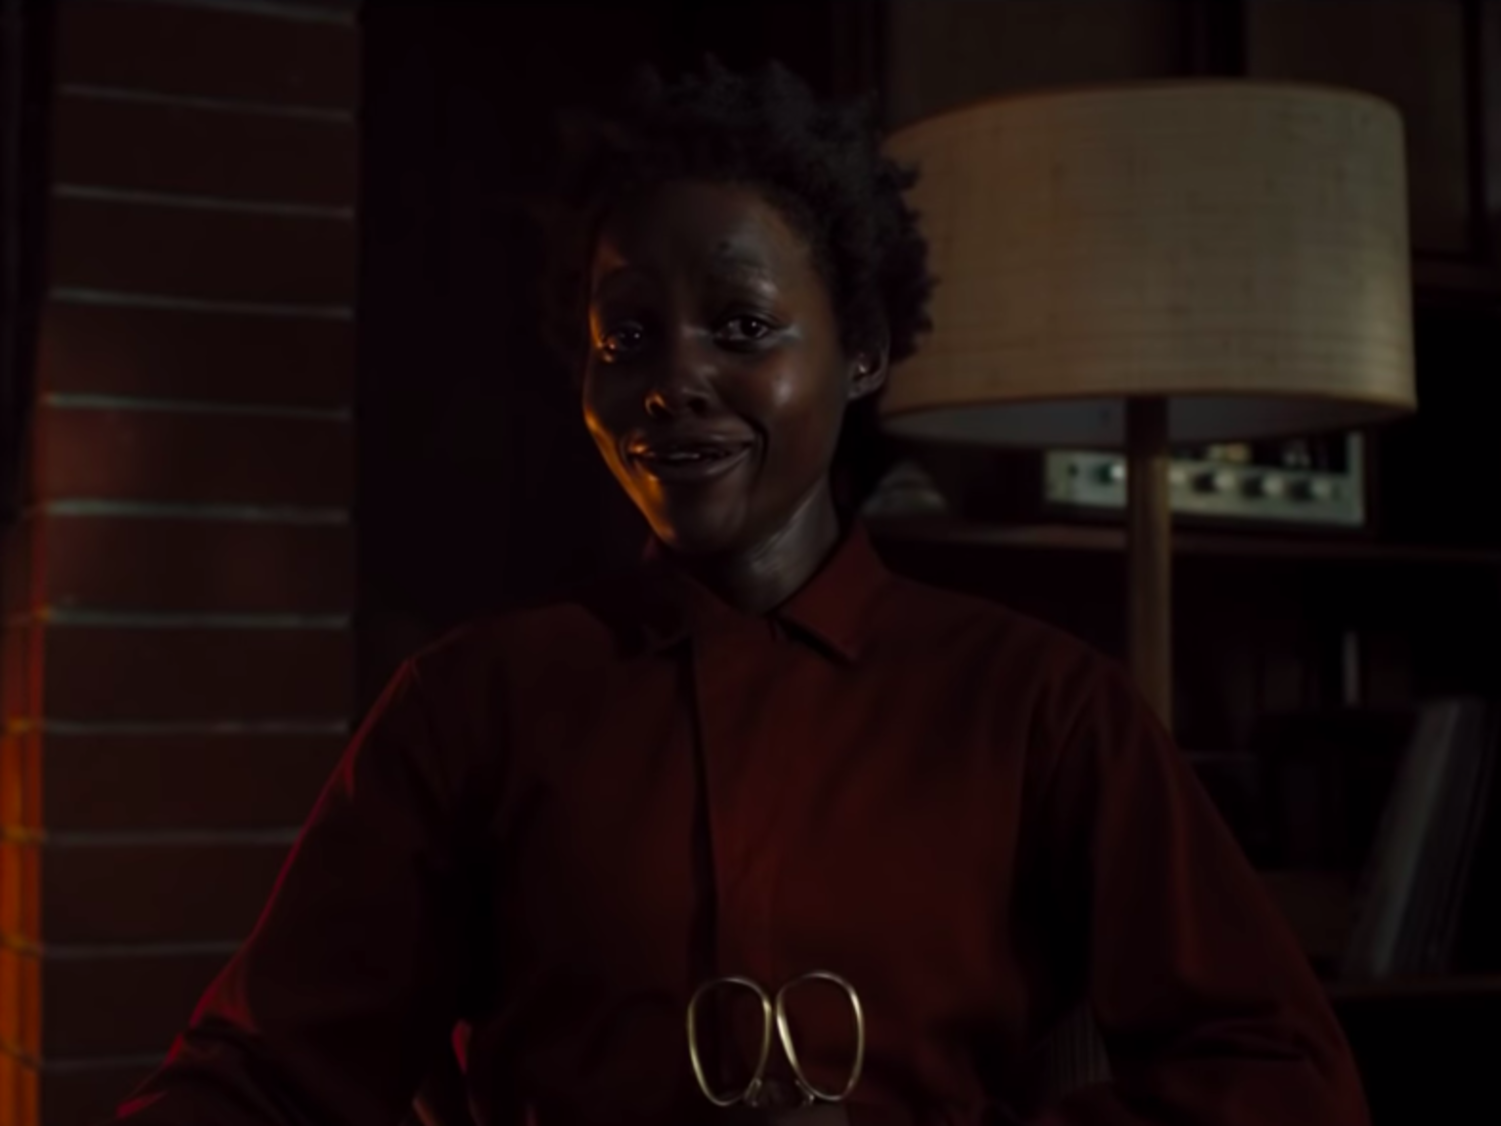 Lupita Nyong'o plays both the primary protagonist and antagonist in Jordan Peele's latest mind-bending horror.